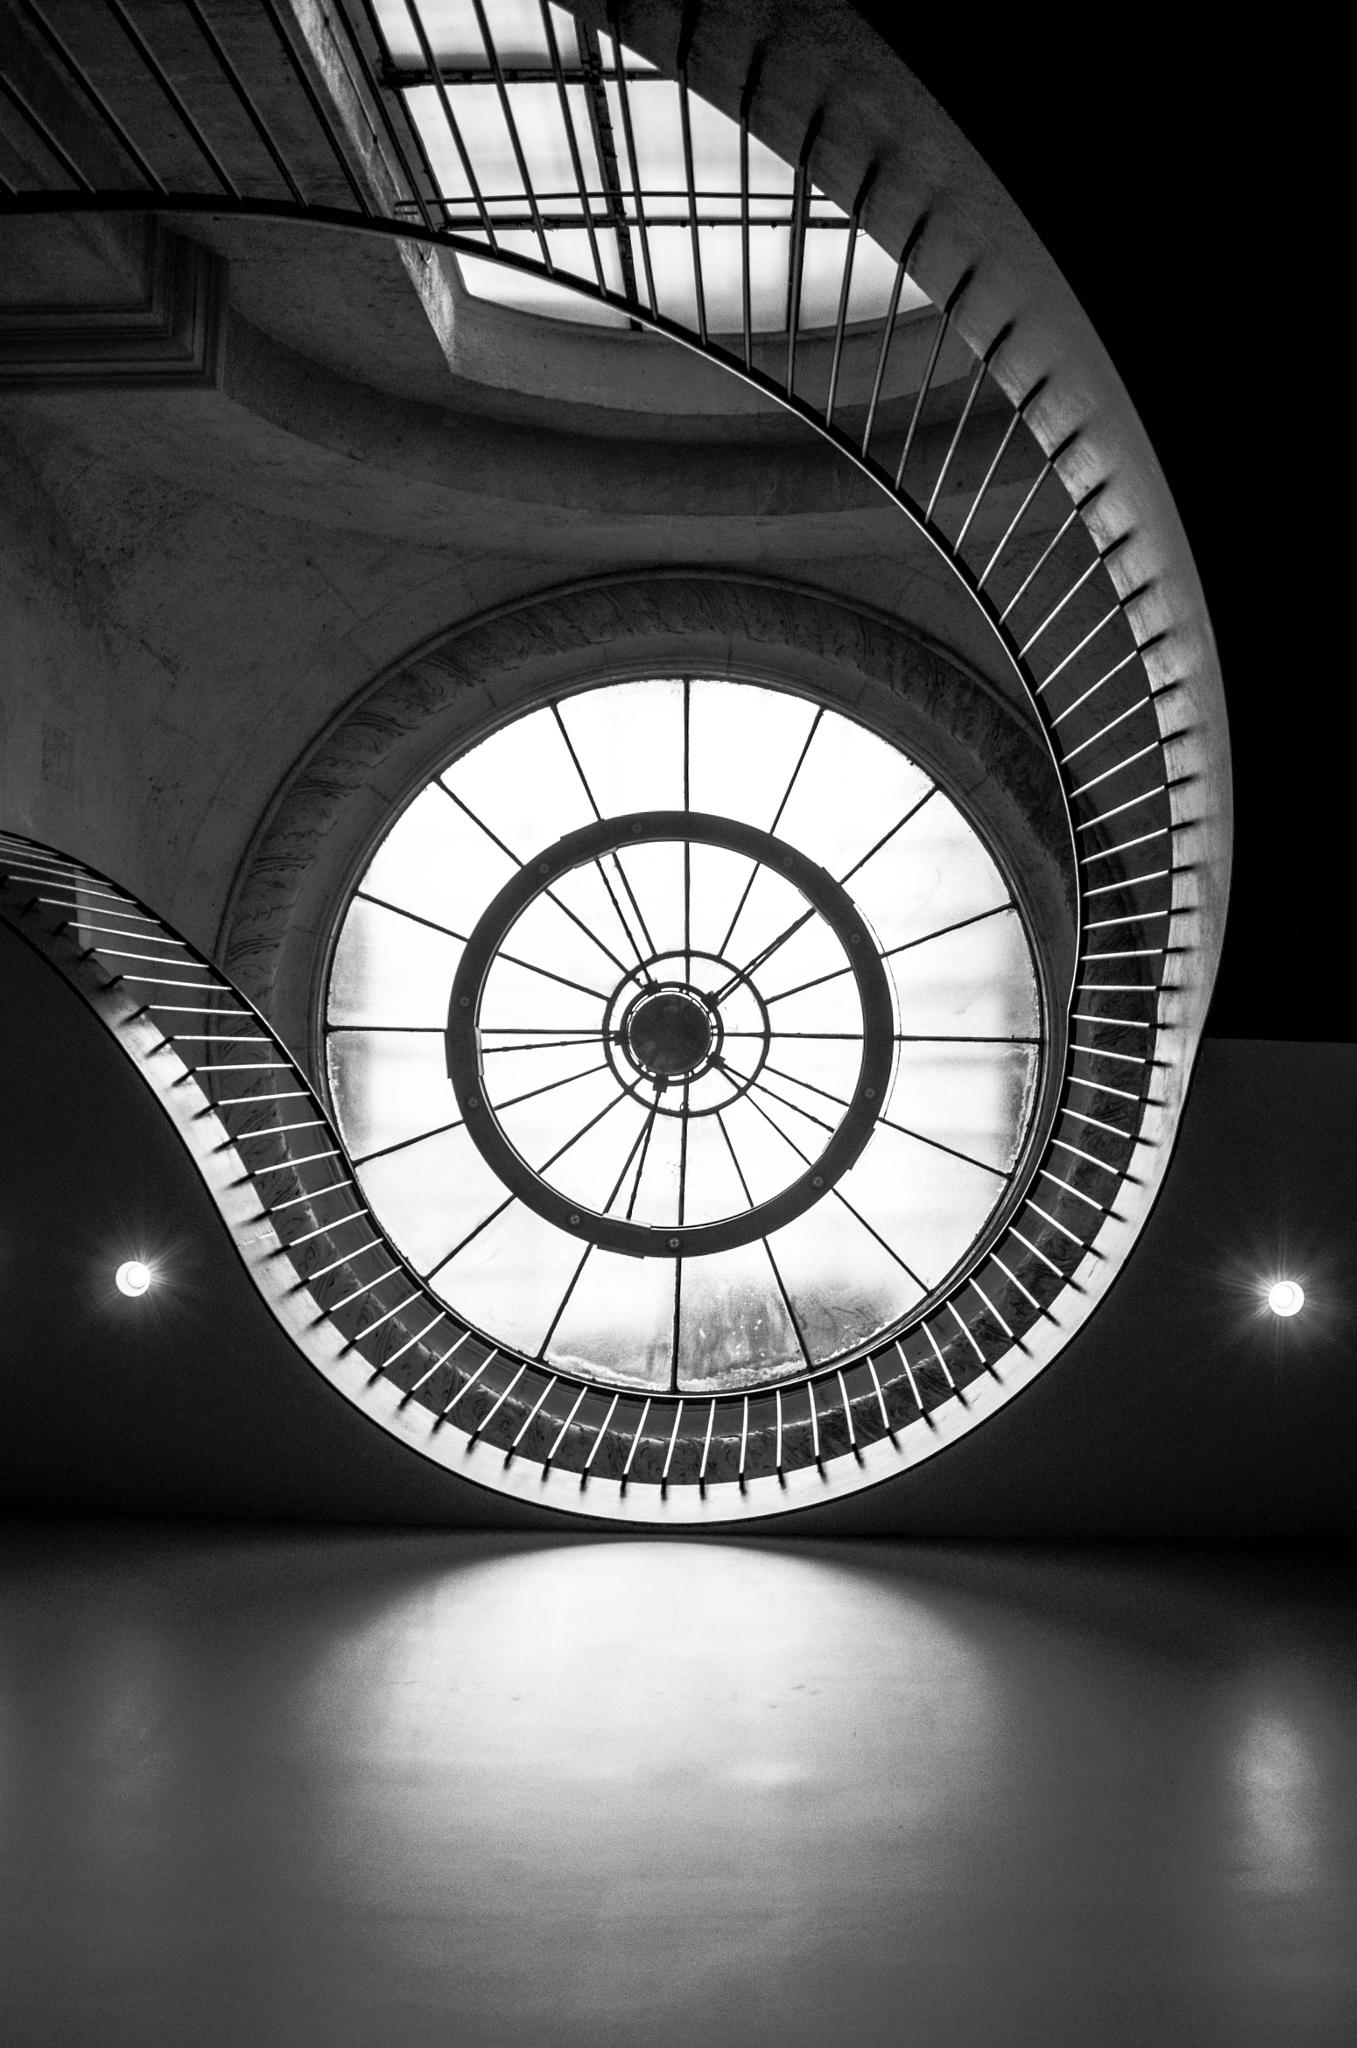 Stairway to heaven by Manuel Atréide